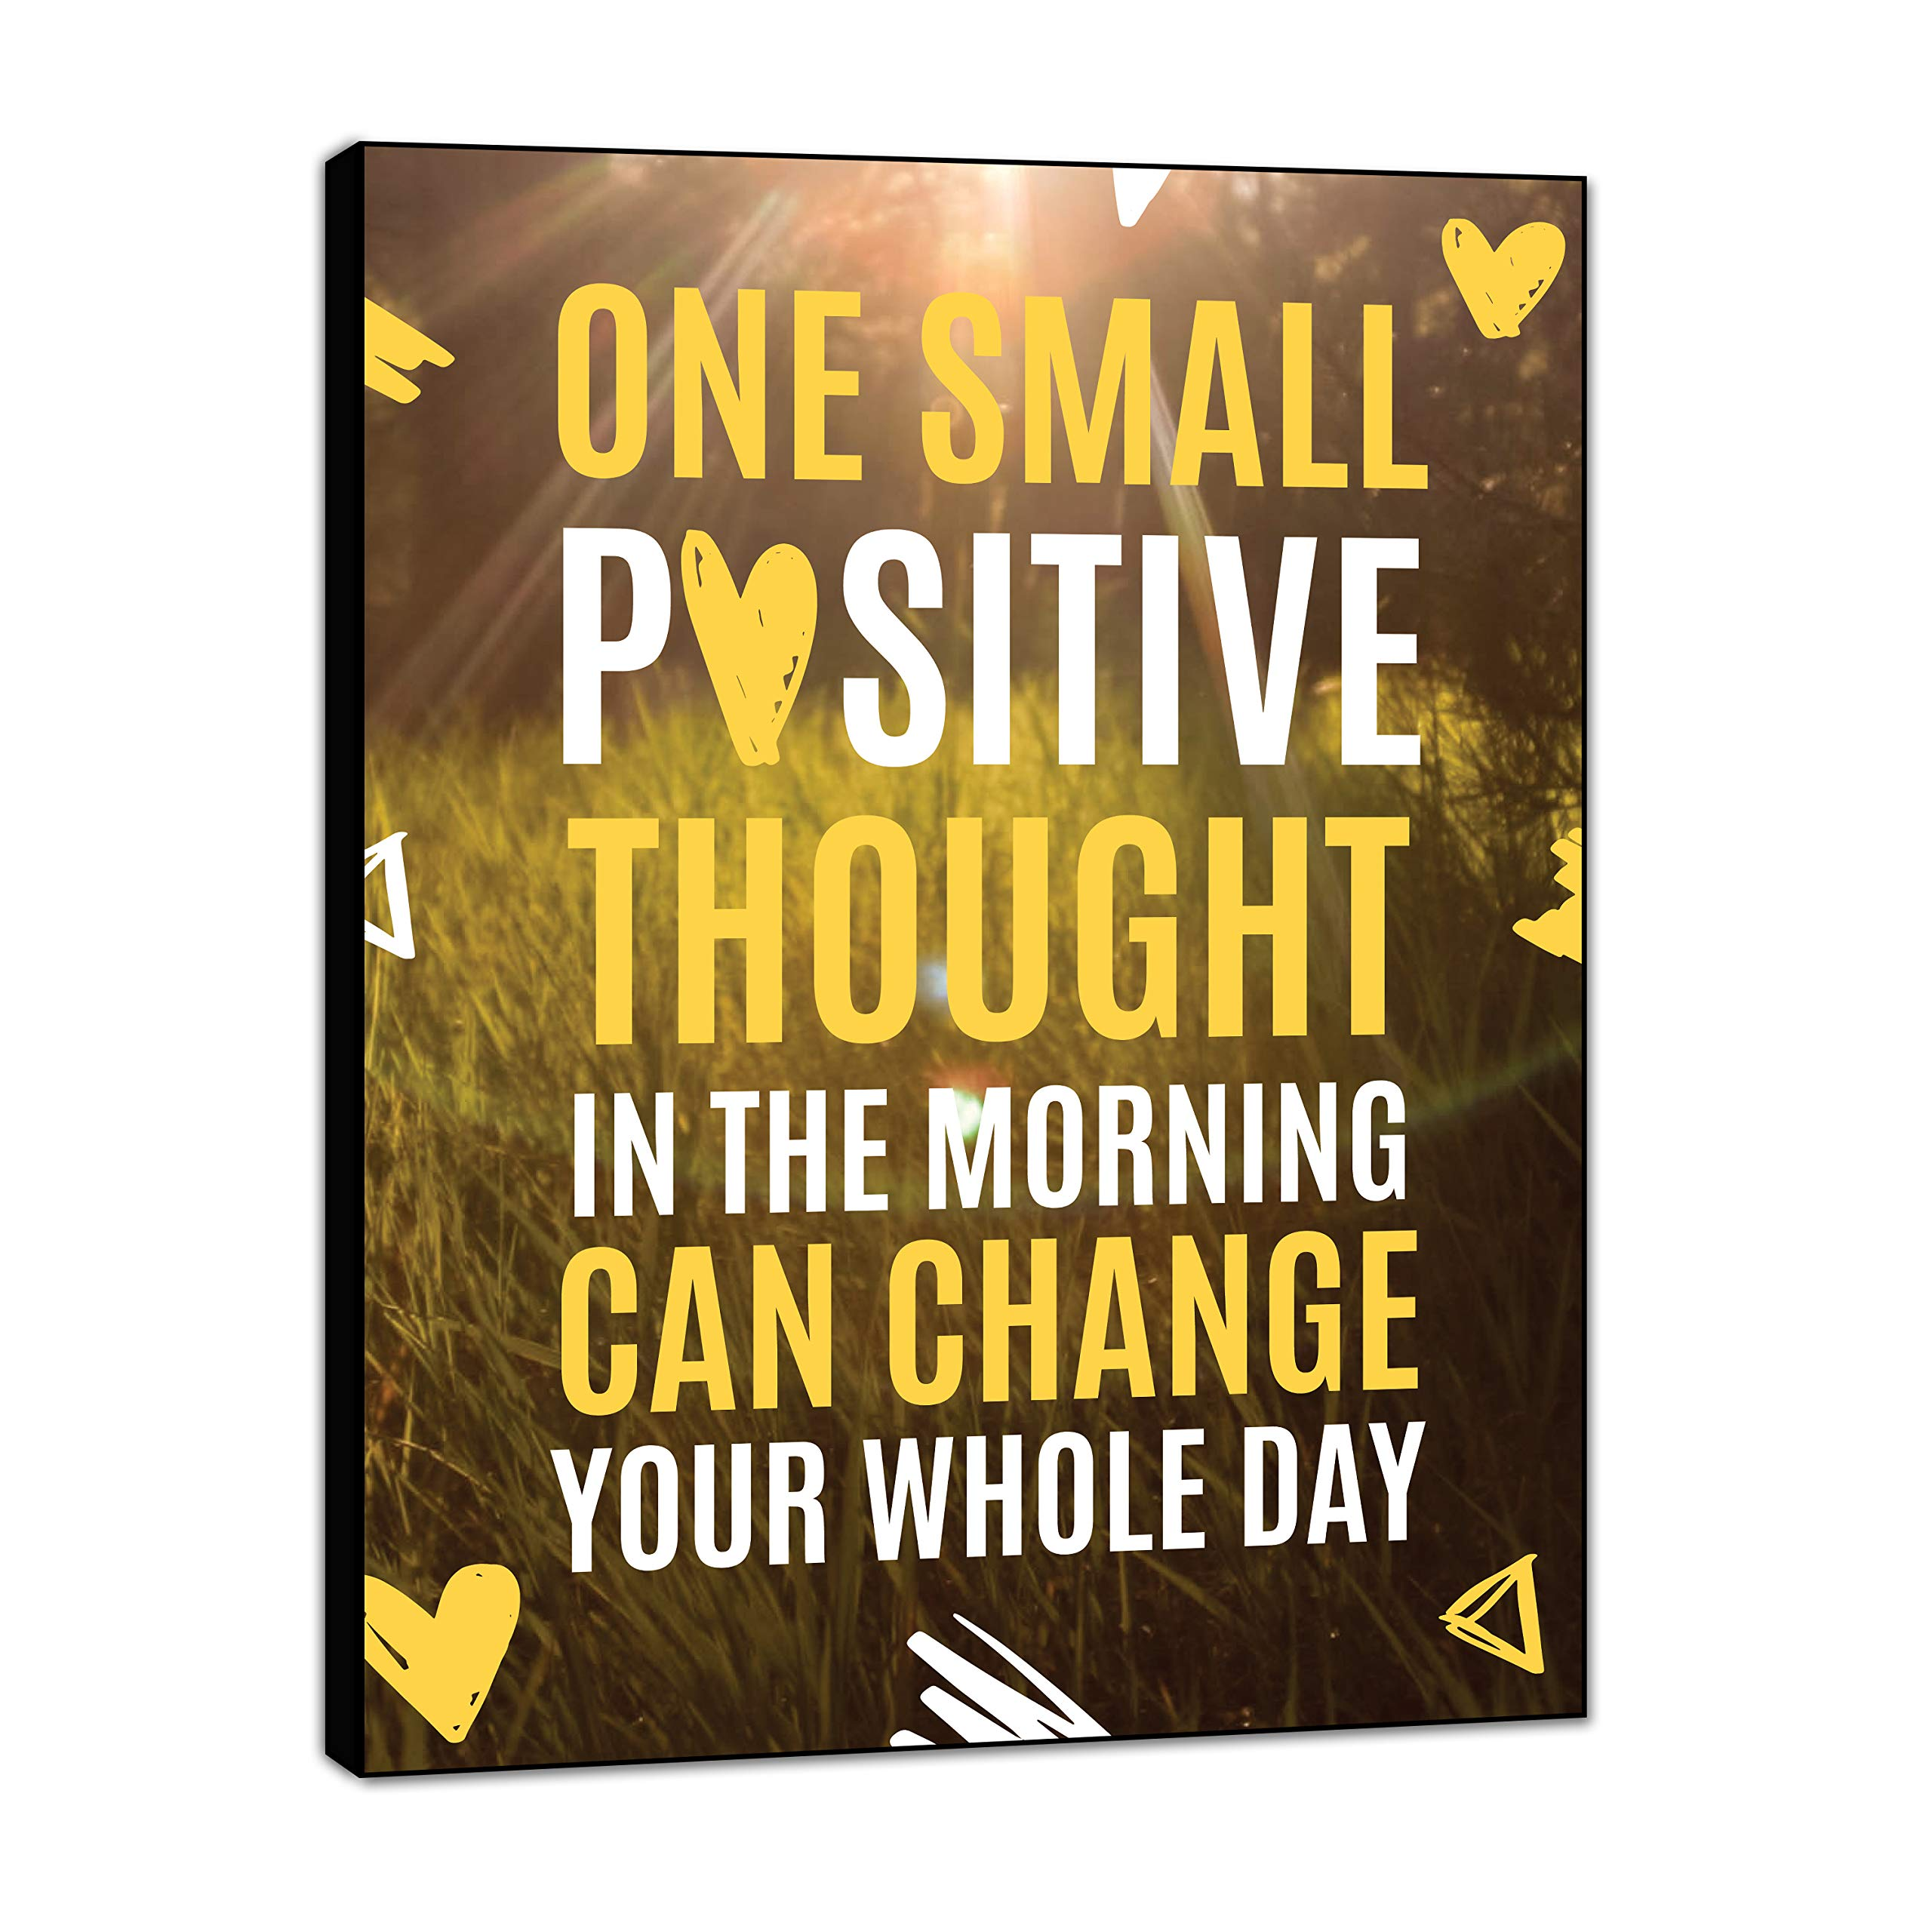 LACOFFIO Inspirational Wall Art Decor One Small Positive Thought 9''x12'' Motivational Wall Art Quotes Wood Sign Perfect for Office Spaces No-Chip No Warp by LACOFFIO